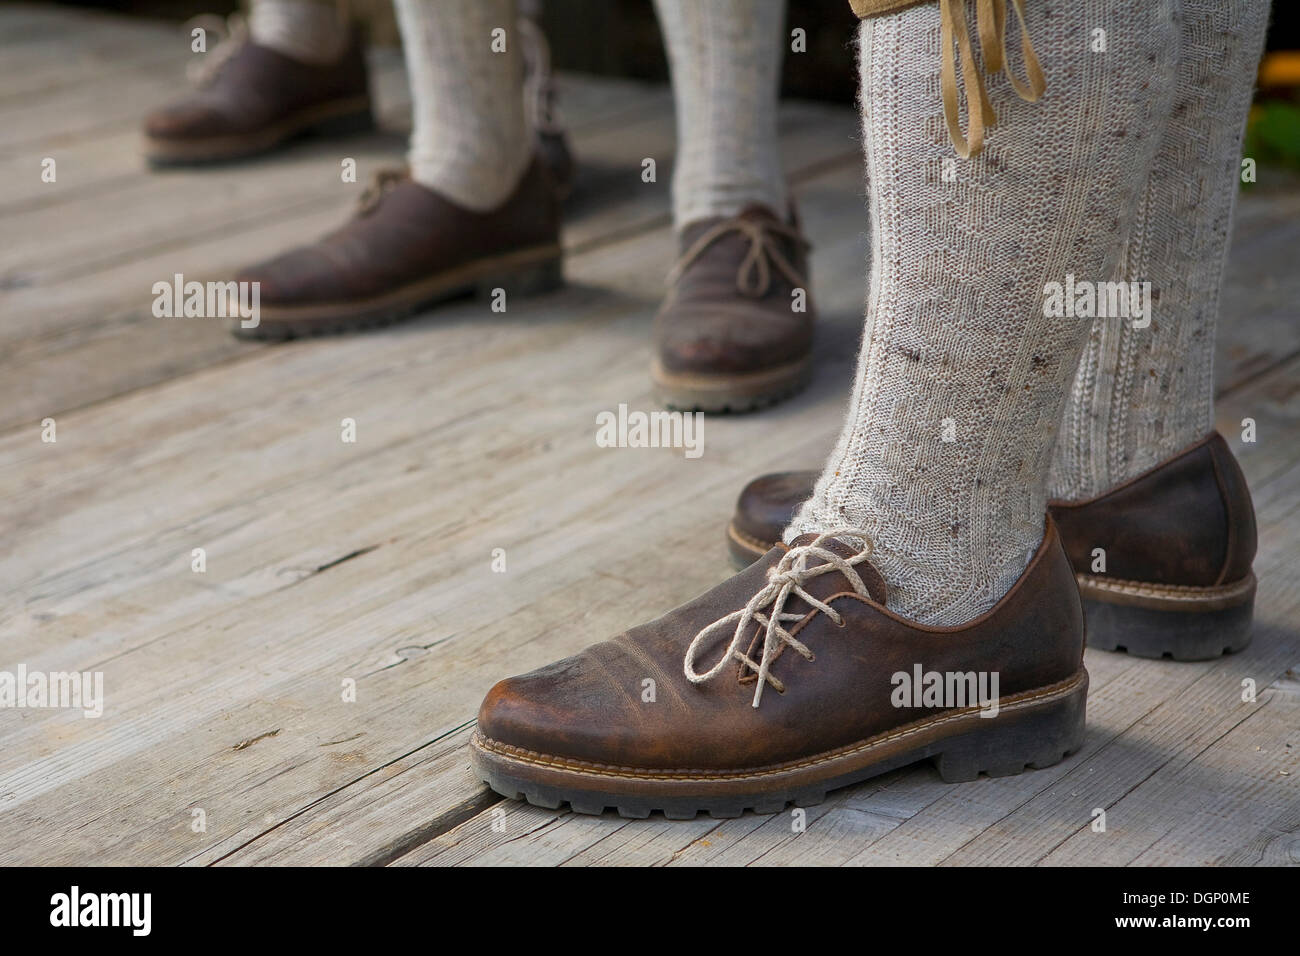 Tyrolean traditional costume, detail of the feet, South Tyrol, Italy, Europe - Stock Image